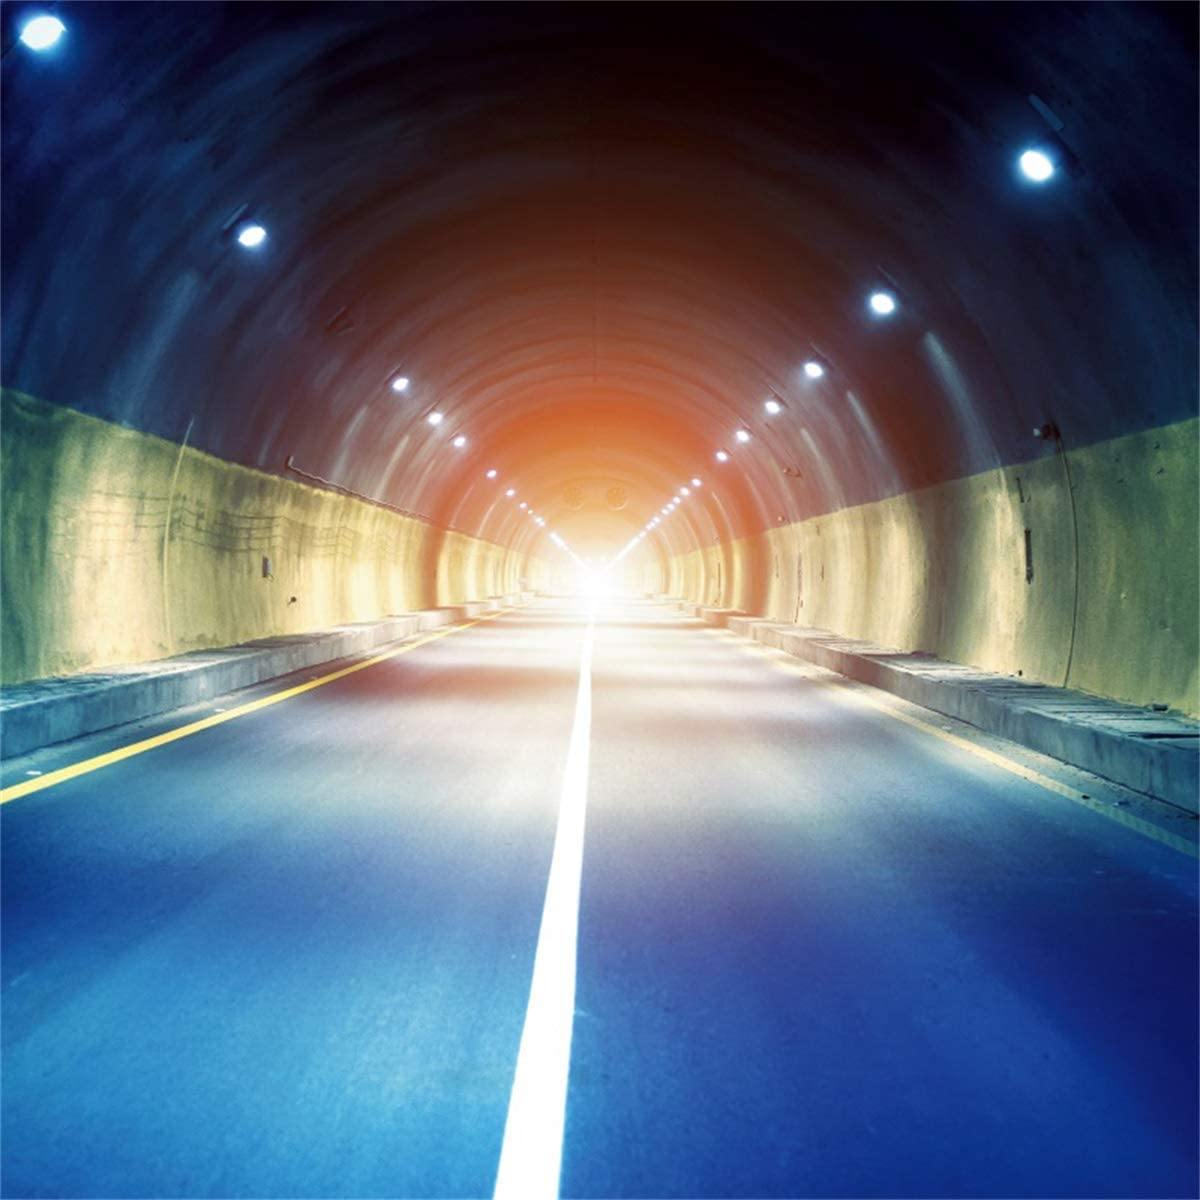 YEELE Tunnel Backdrop 6.5x6.5ft Long Highway in Tunnel at Night Photography Background City Night Landscape Kids Girls Adults Portrait Photoshoot Studio Props Digital Wallpaper